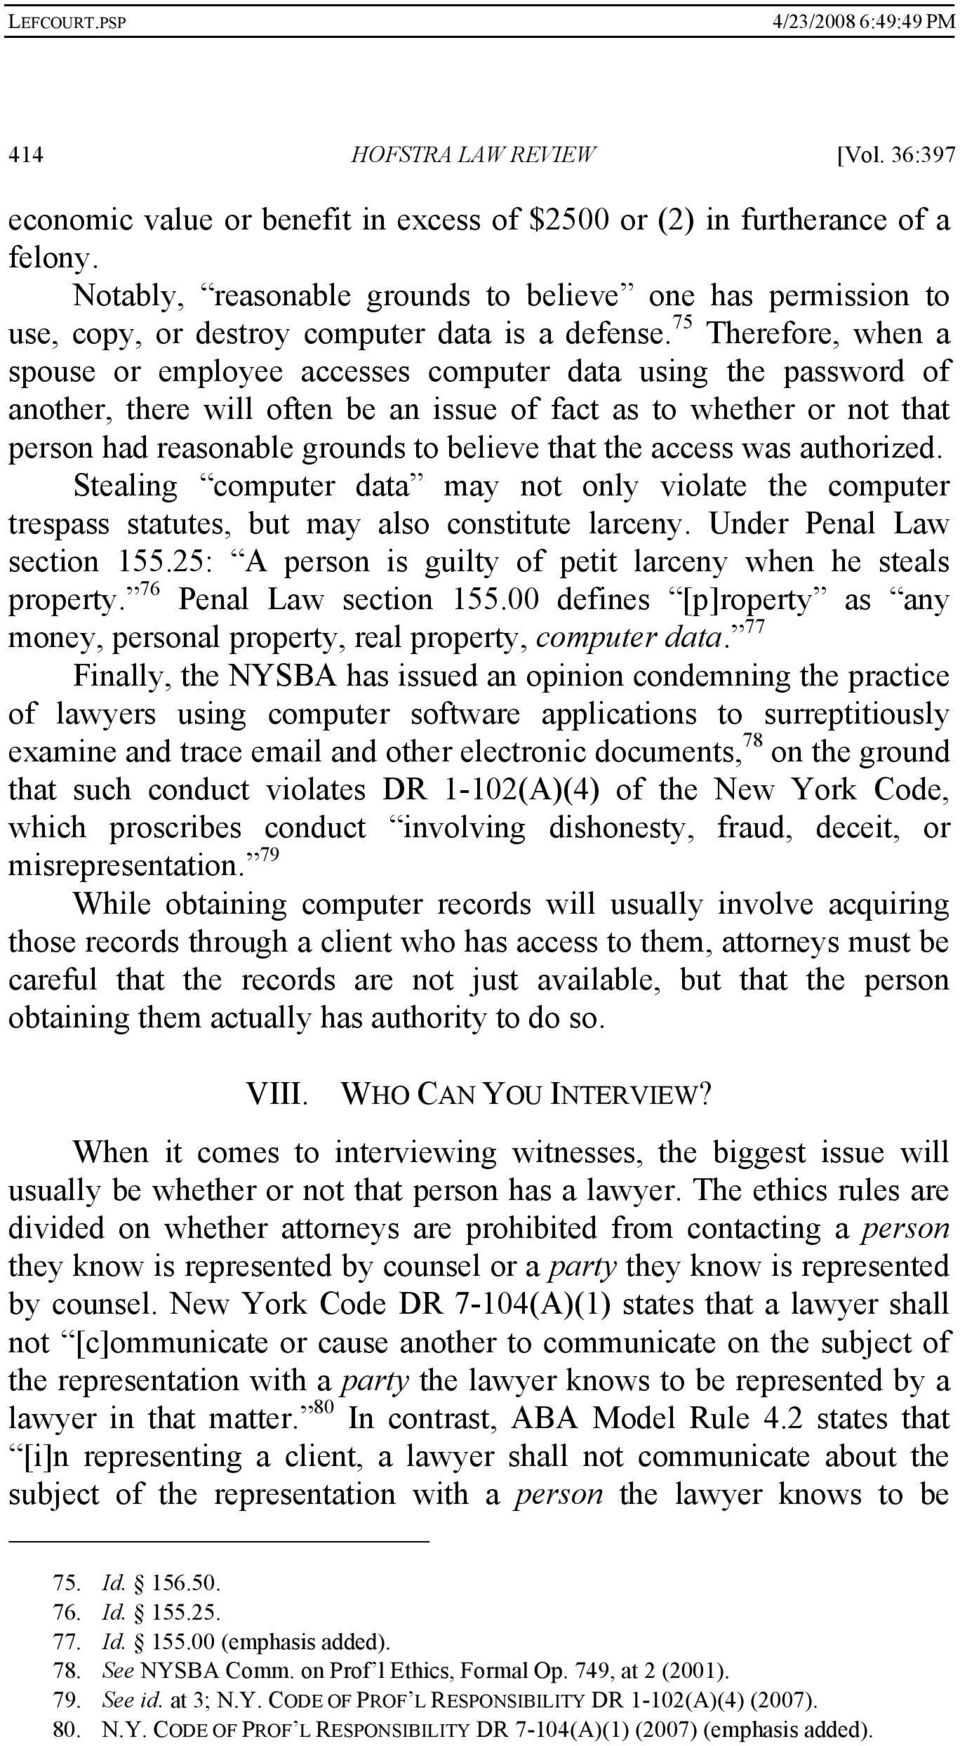 75 Therefore, when a spouse or employee accesses computer data using the password of another, there will often be an issue of fact as to whether or not that person had reasonable grounds to believe